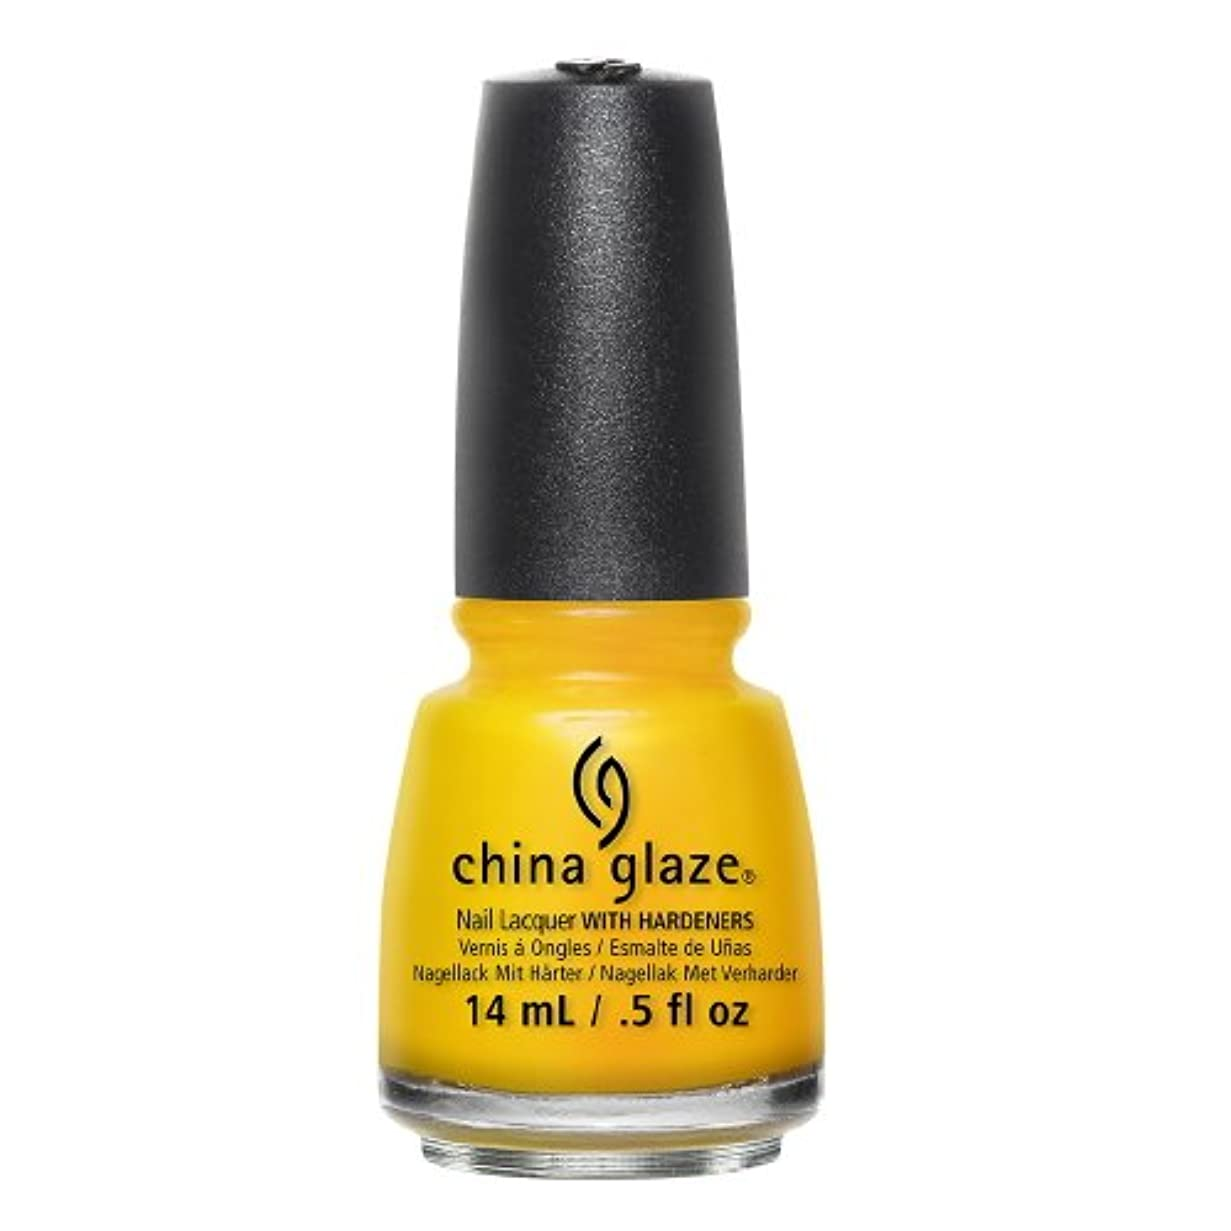 アルカトラズ島守る賢明な(3 Pack) CHINA GLAZE Nail Lacquer - Road Trip - Suns Up Top Down (並行輸入品)